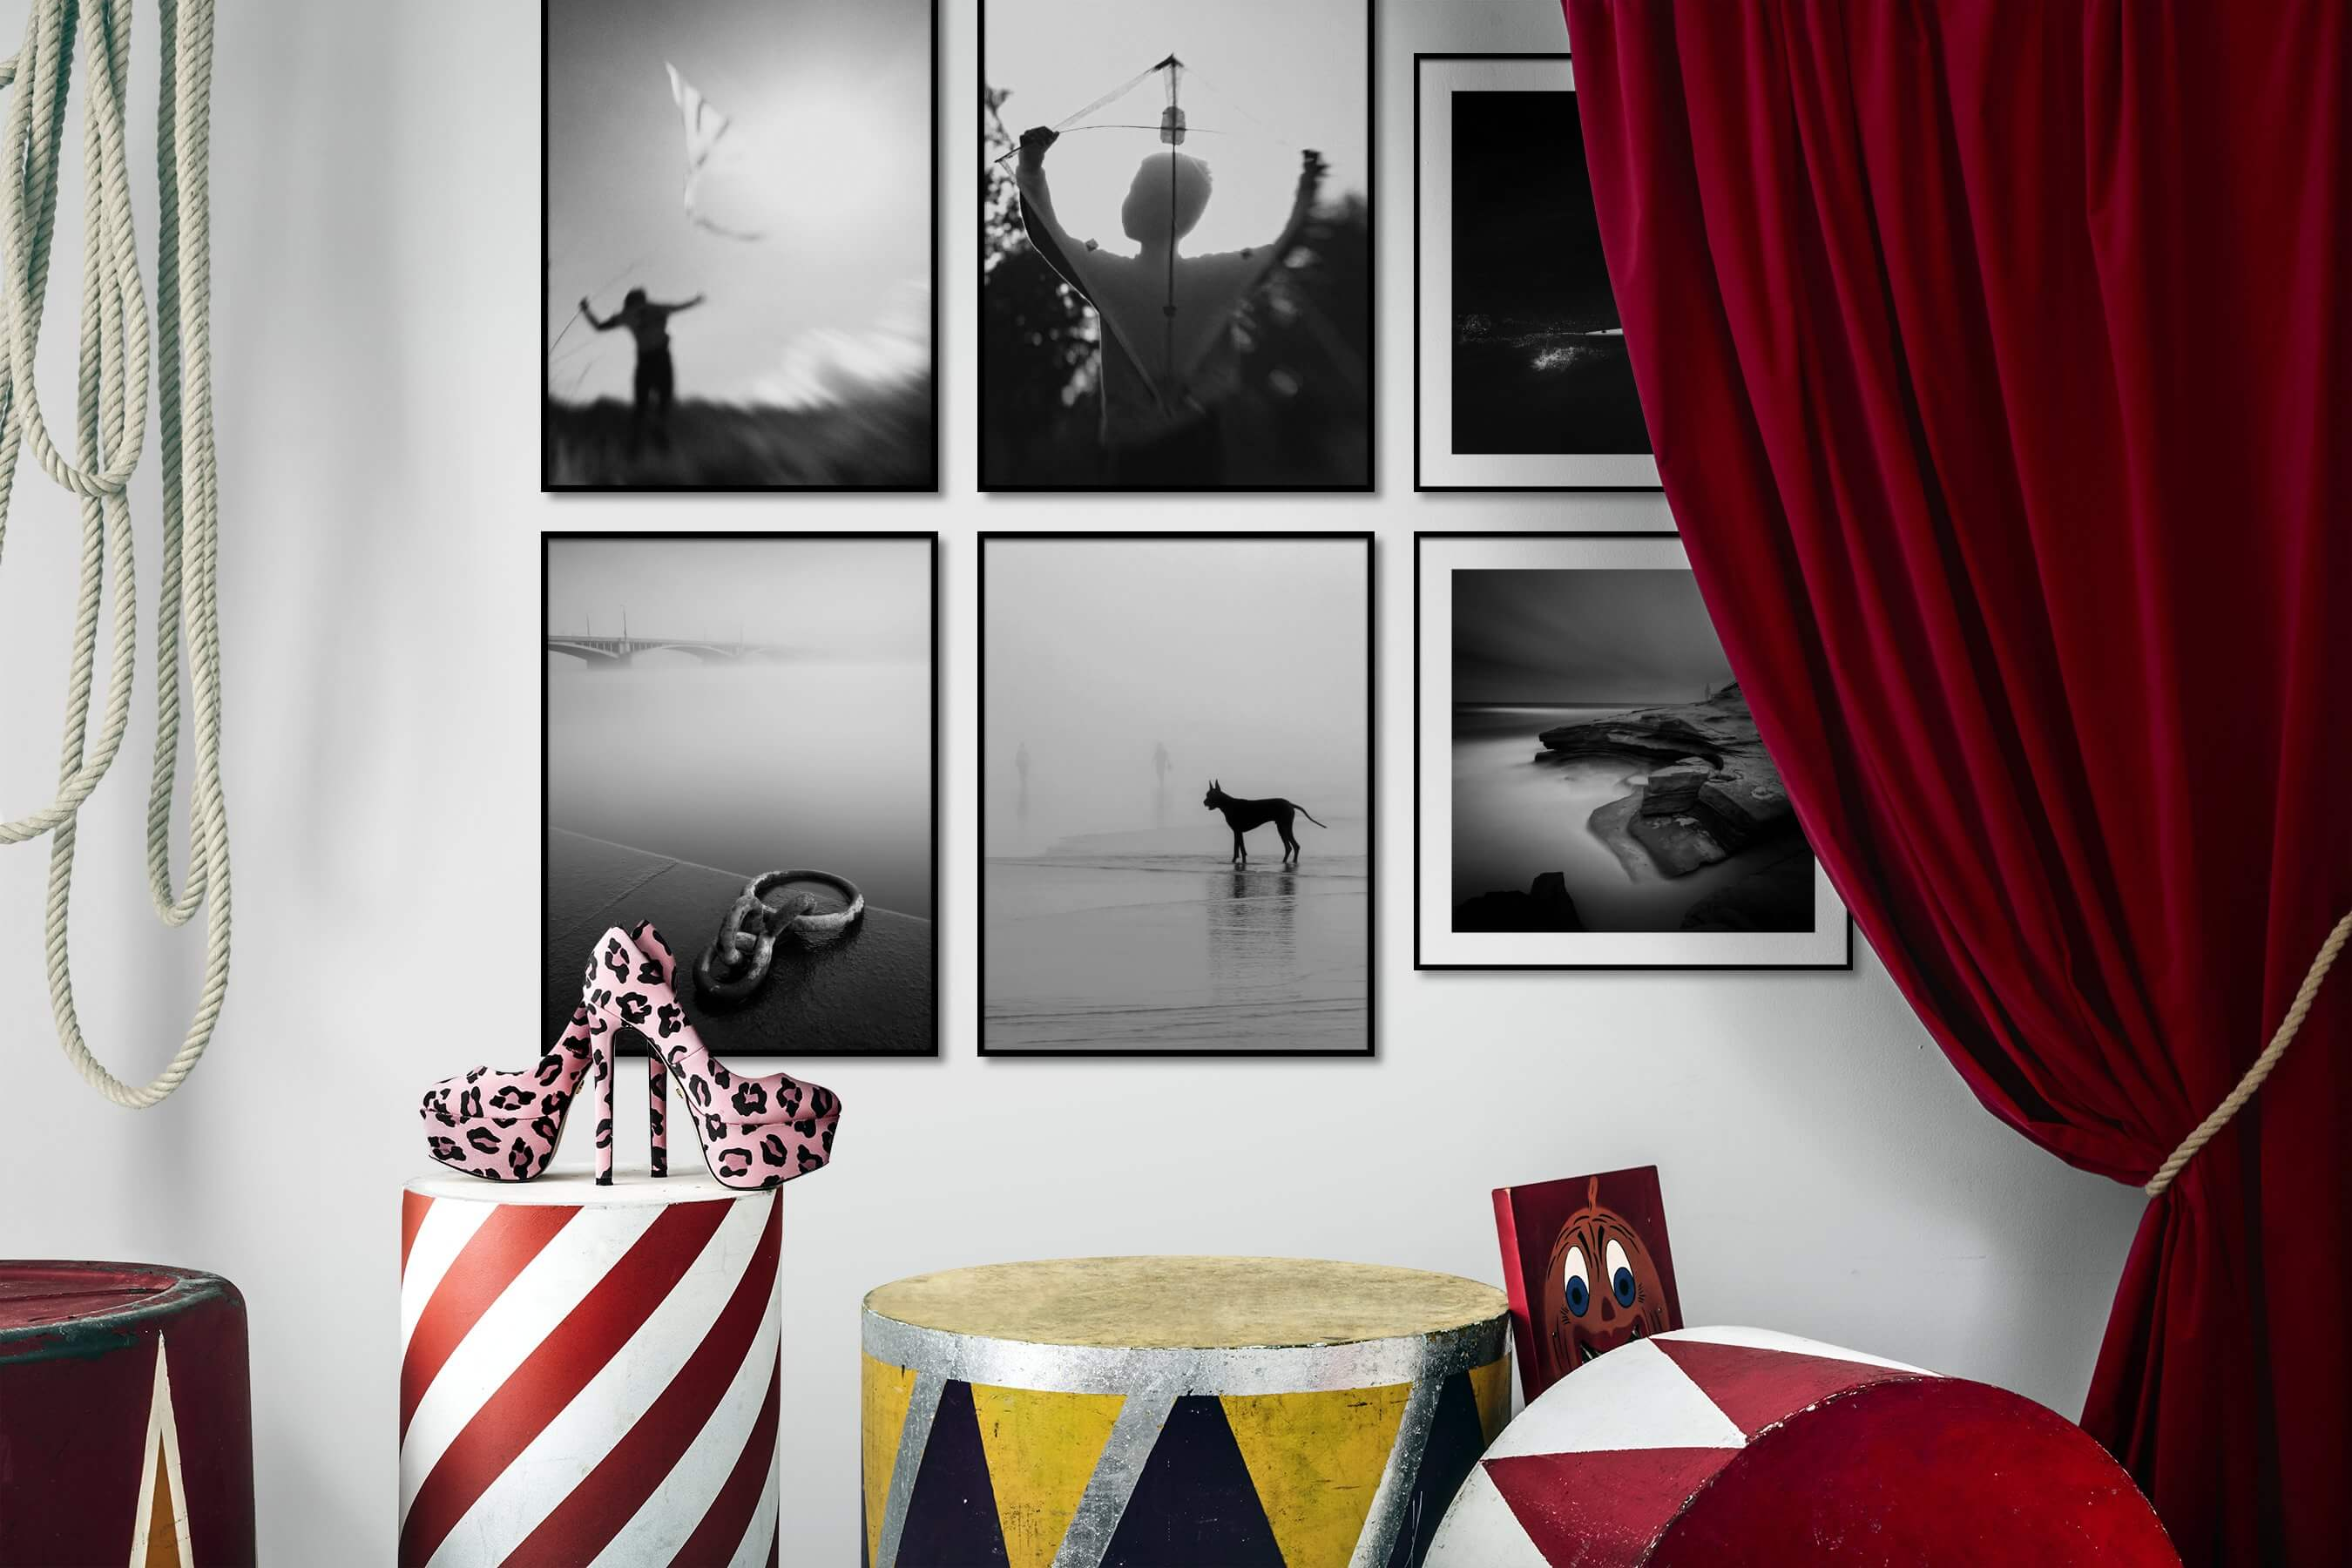 Gallery wall idea with six framed pictures arranged on a wall depicting Black & White, Country Life, For the Moderate, Beach & Water, For the Minimalist, and Animals